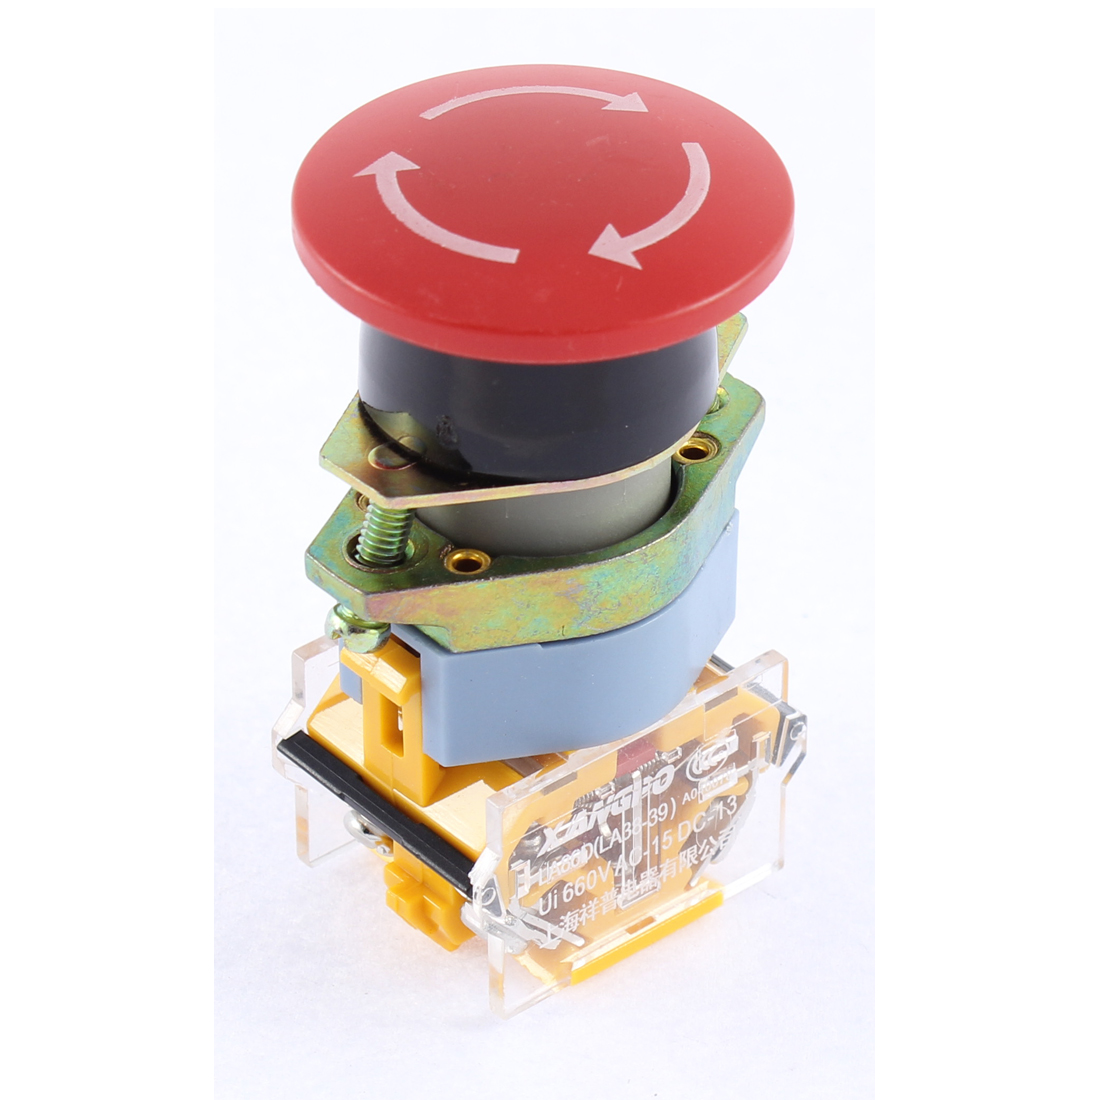 DPST 1NO 1NC Red Mushroom Emergency Stop Push Button Switch Ui 660V 10A